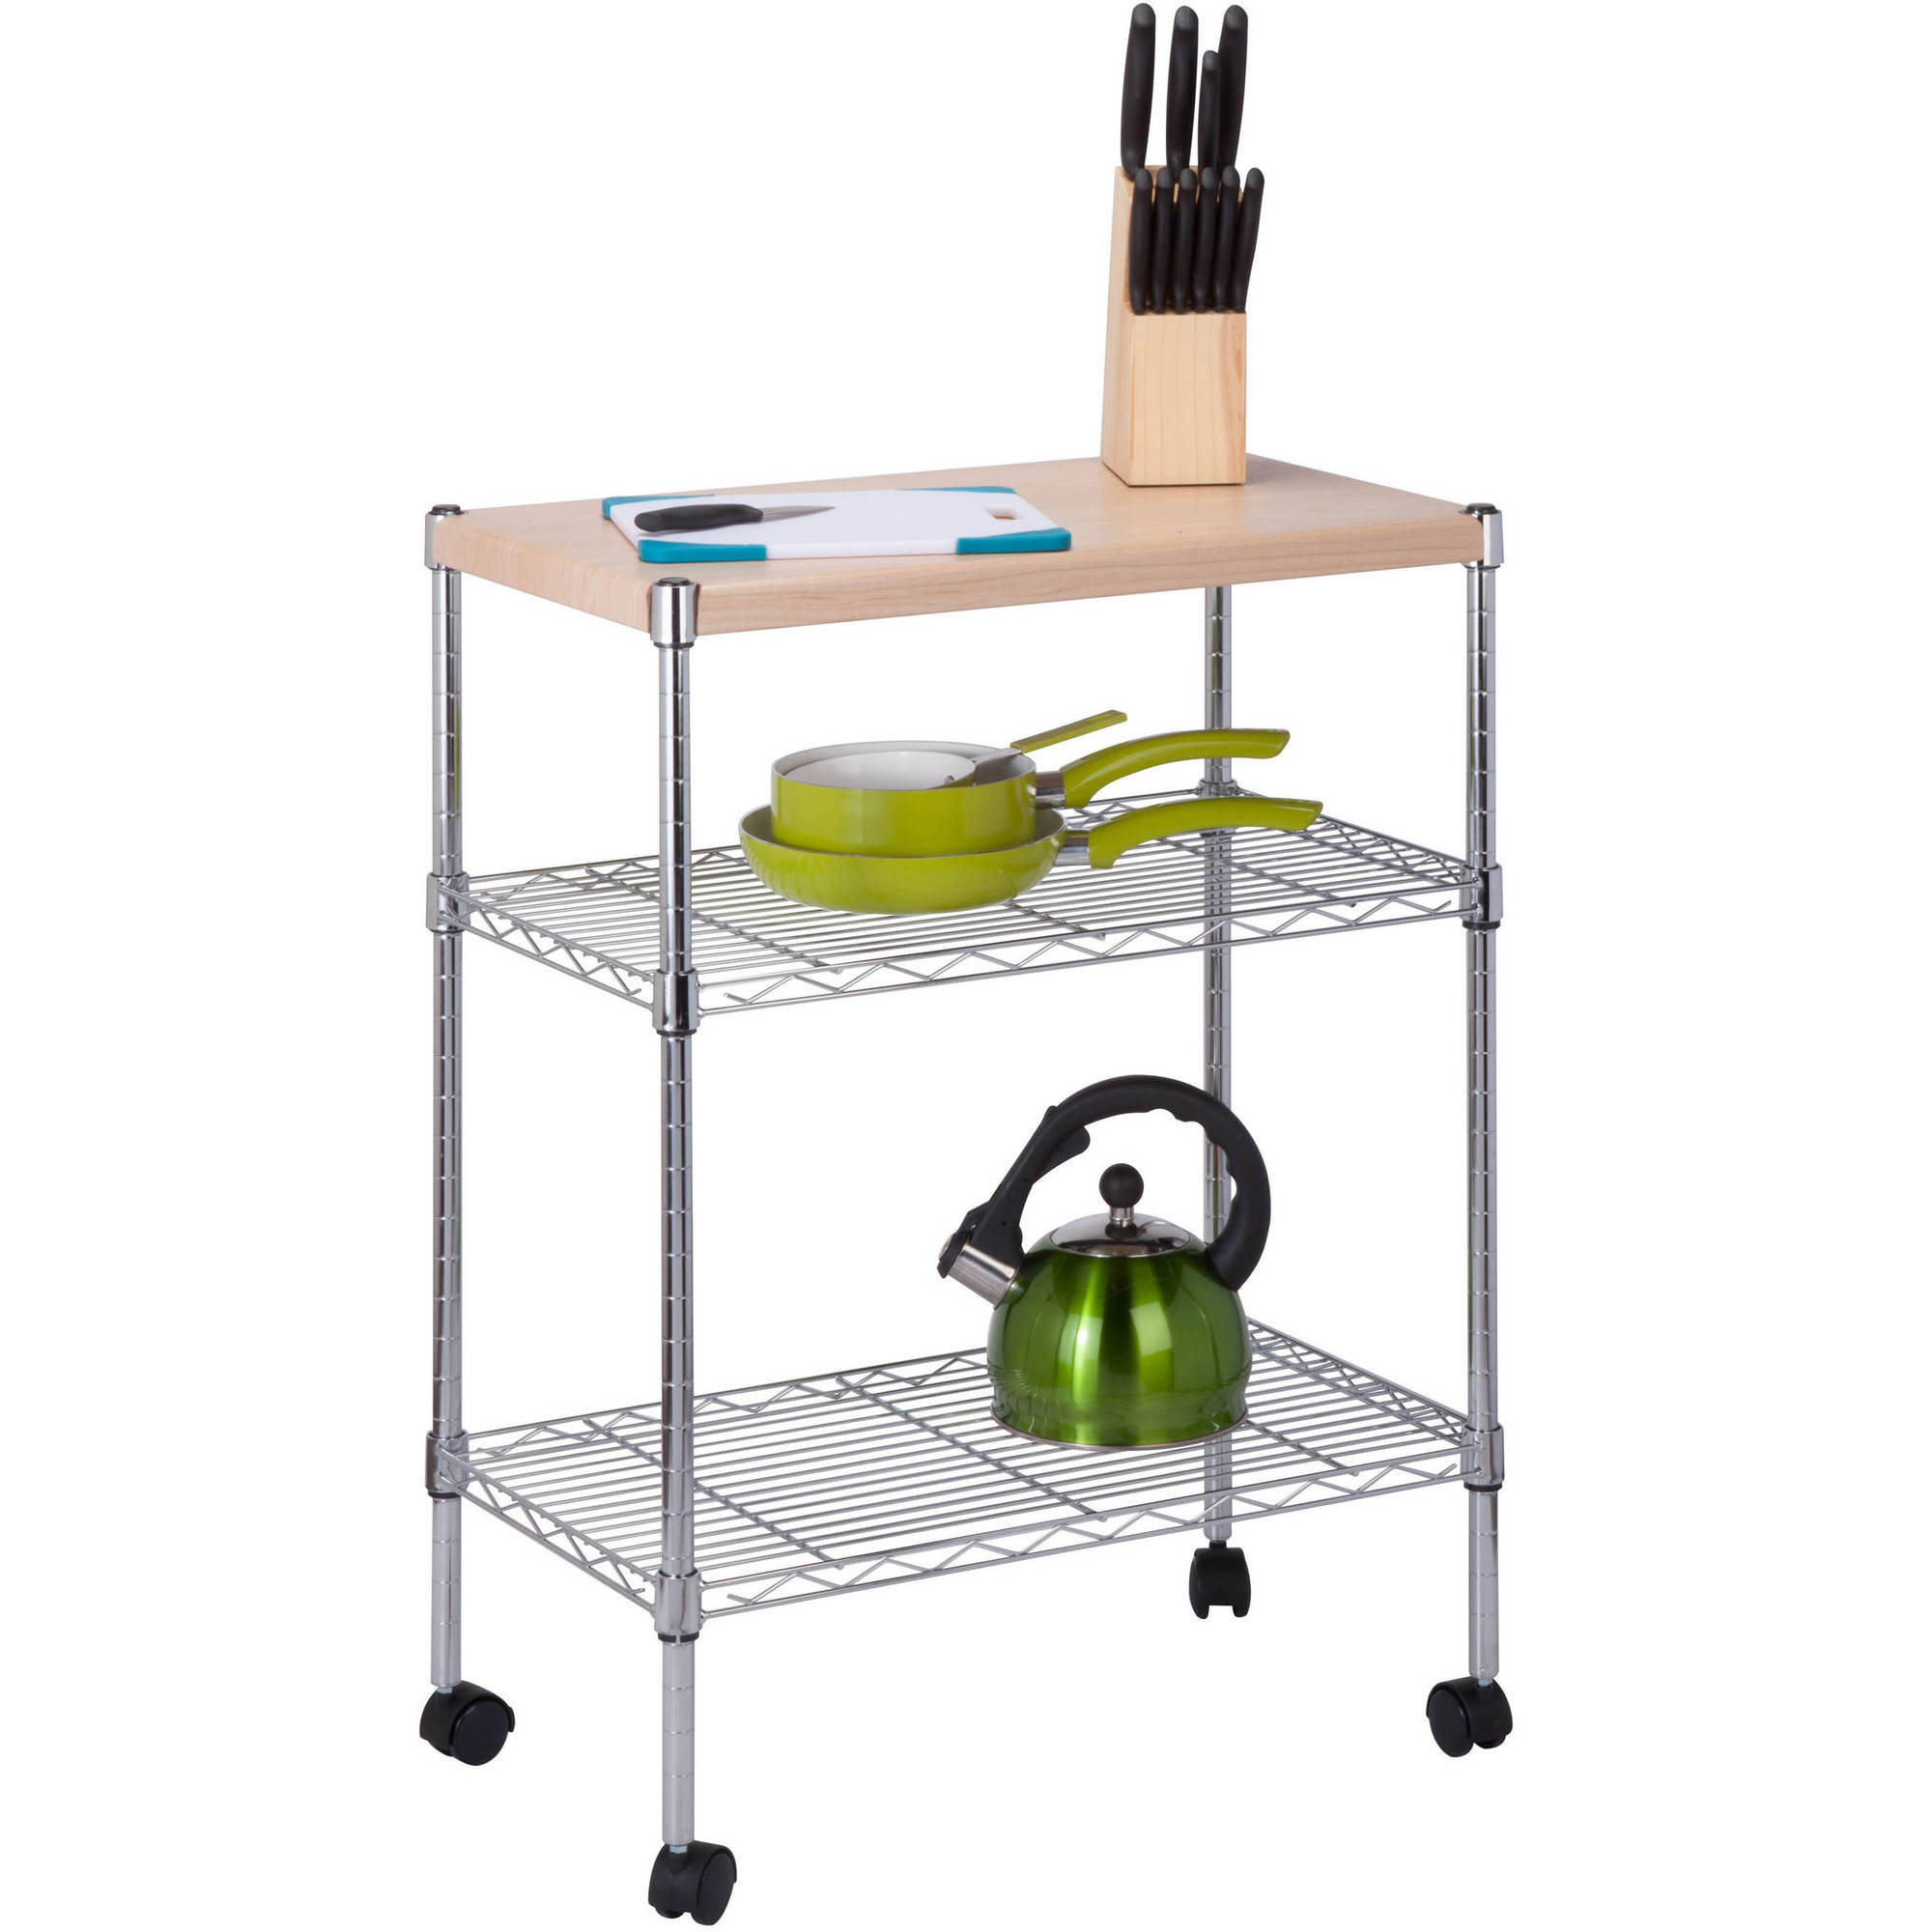 kitchen shelf utility image loading cart ebay itm storage luxor is